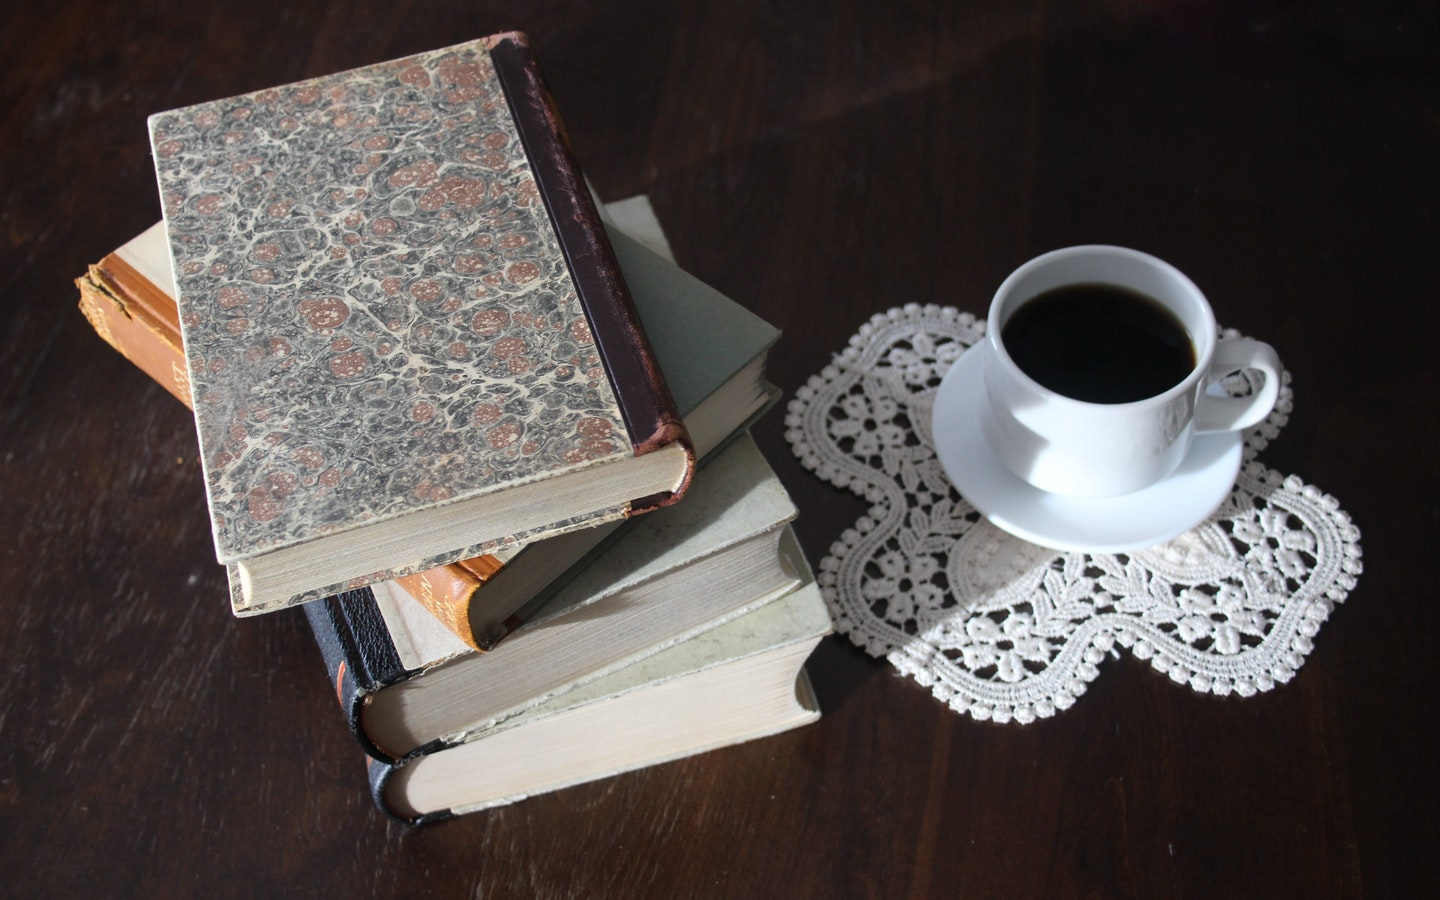 Book and Tea Cup